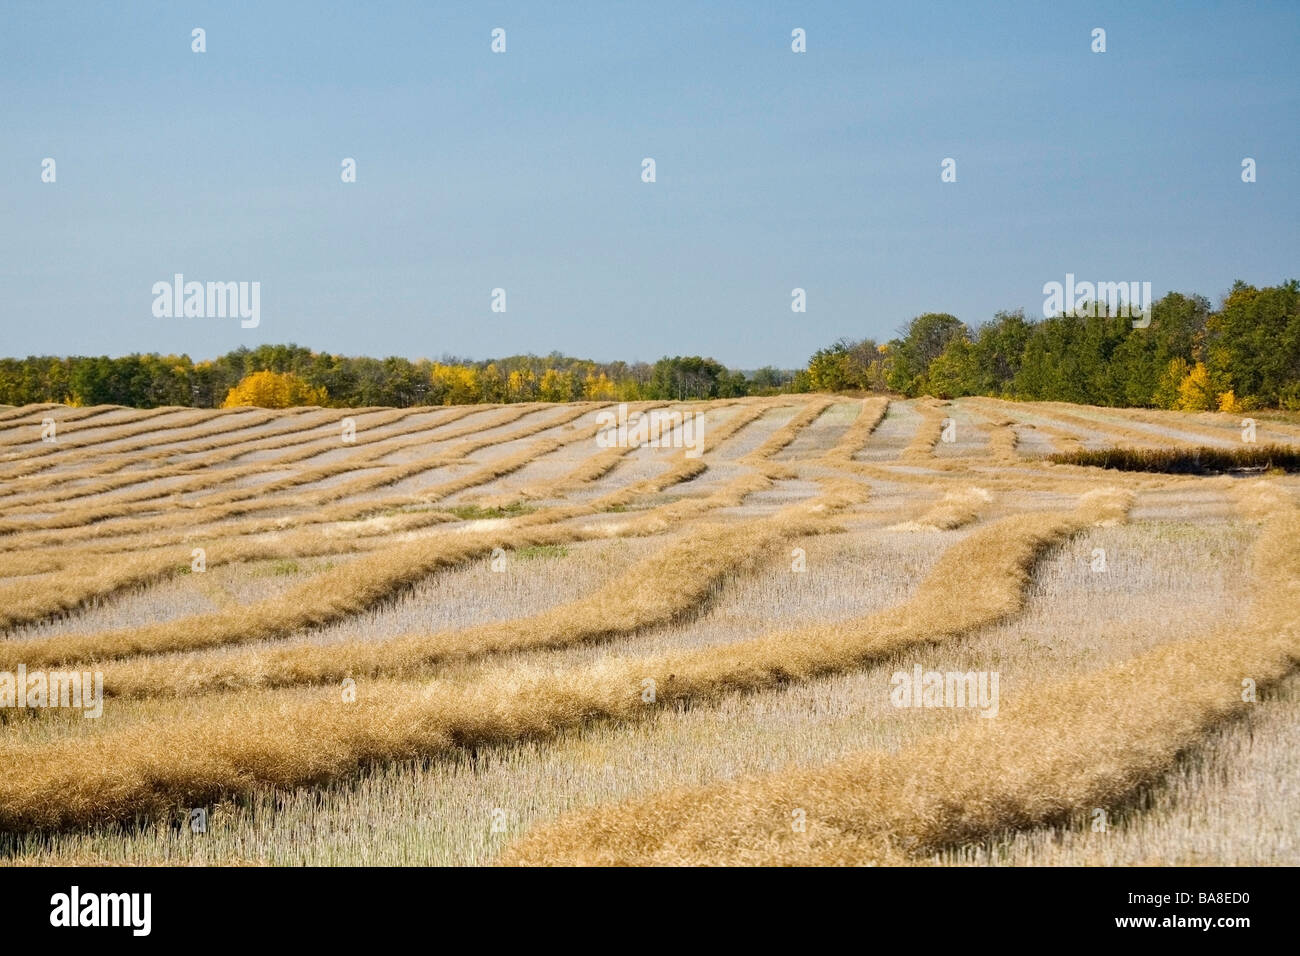 Harvested field - Stock Image